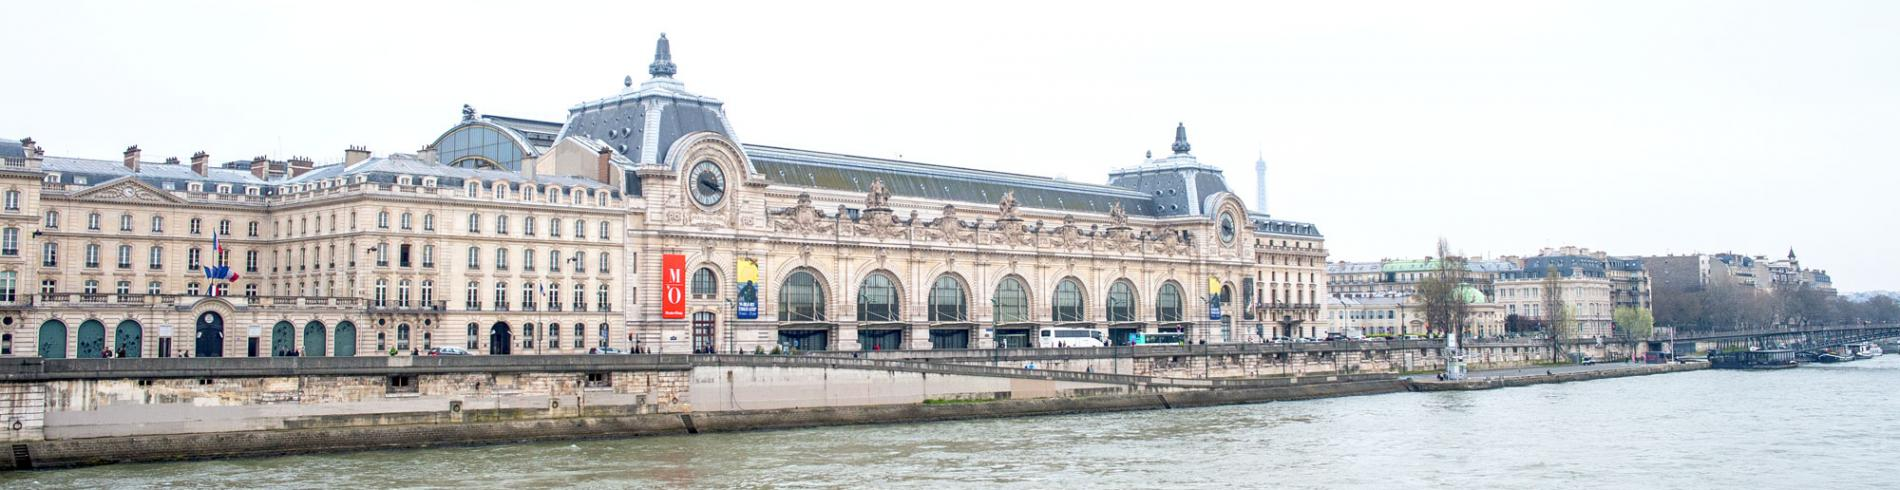 View of the Musee d'Orsay from across the river